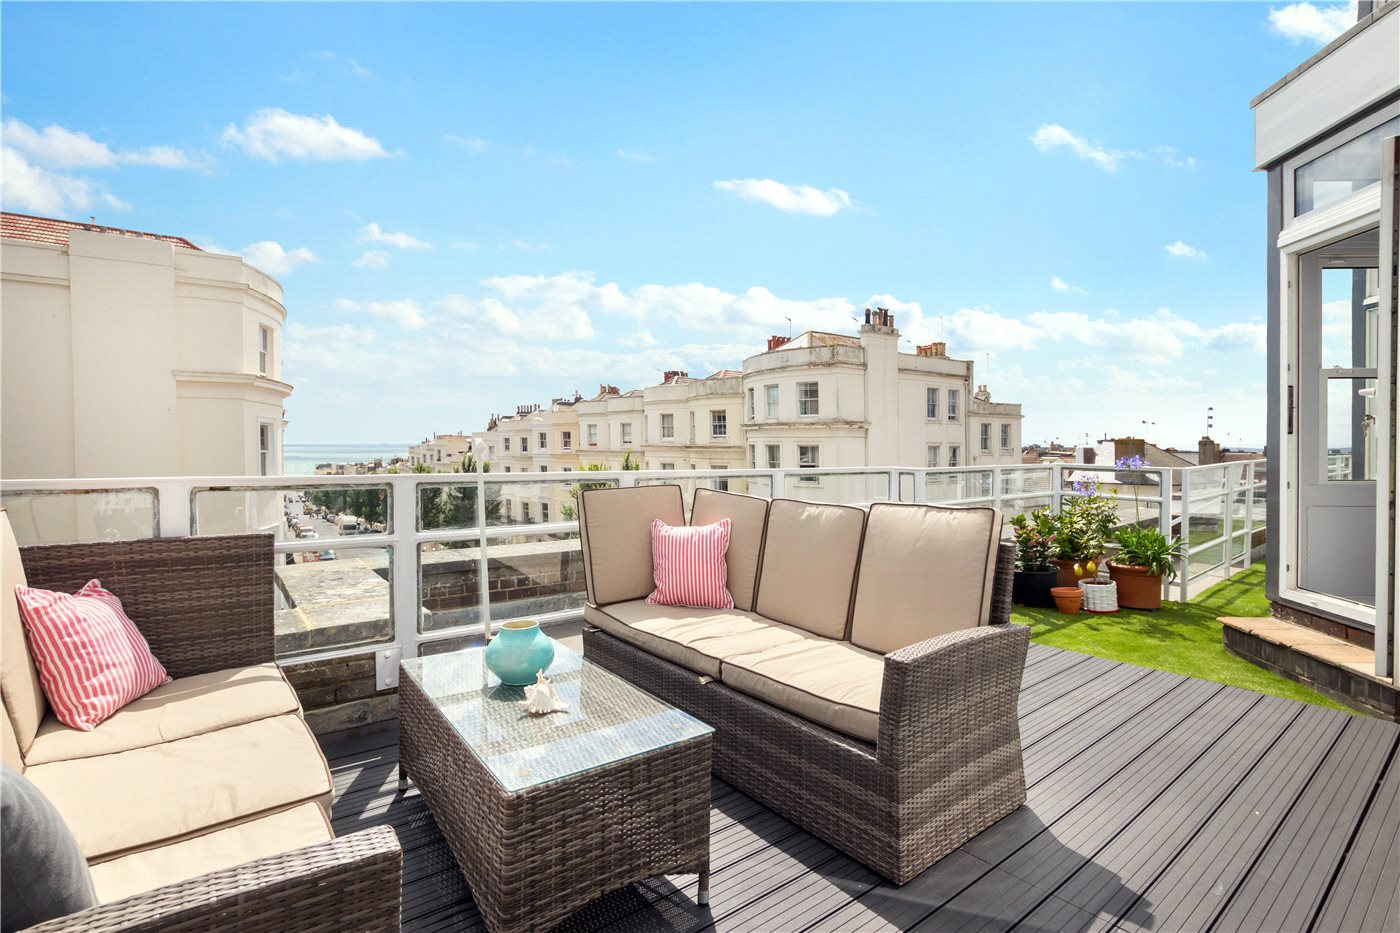 3 Bedrooms Penthouse Flat for sale in Somerhill Lodge, Hove, East Sussex, BN3